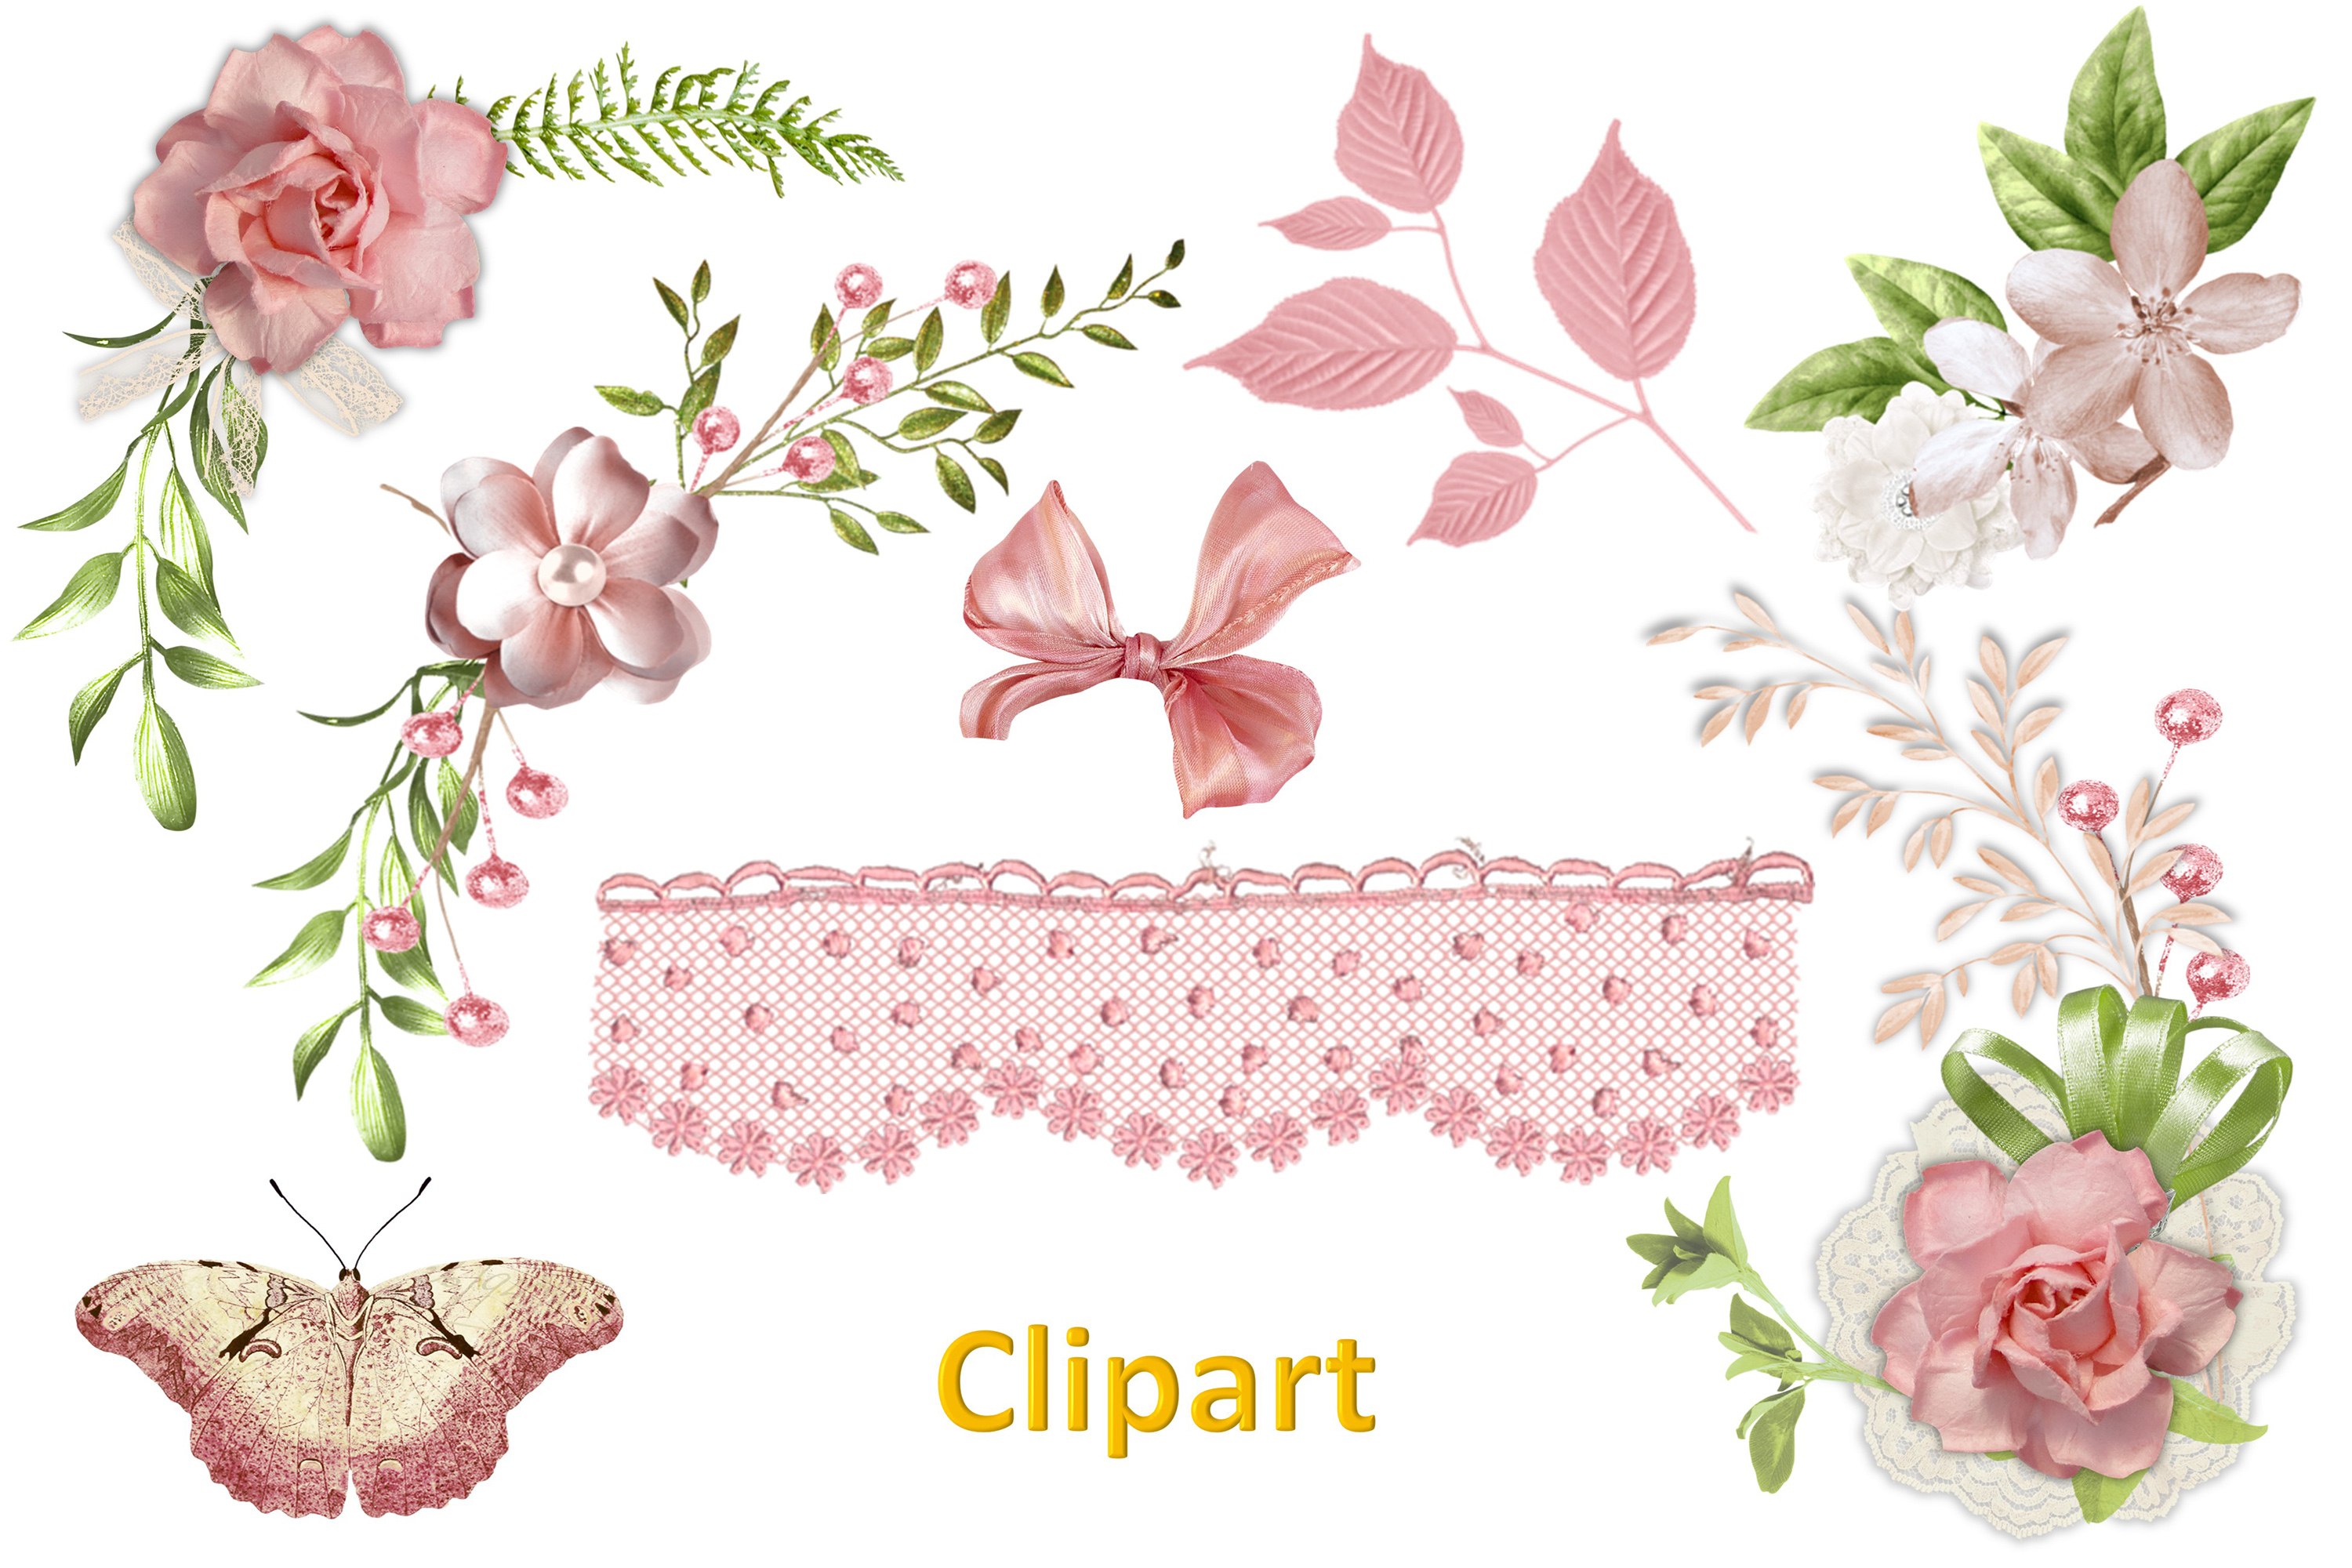 Shabby Chic Vintage backgrounds, Ephemera and Clipart Pmgs example image 11